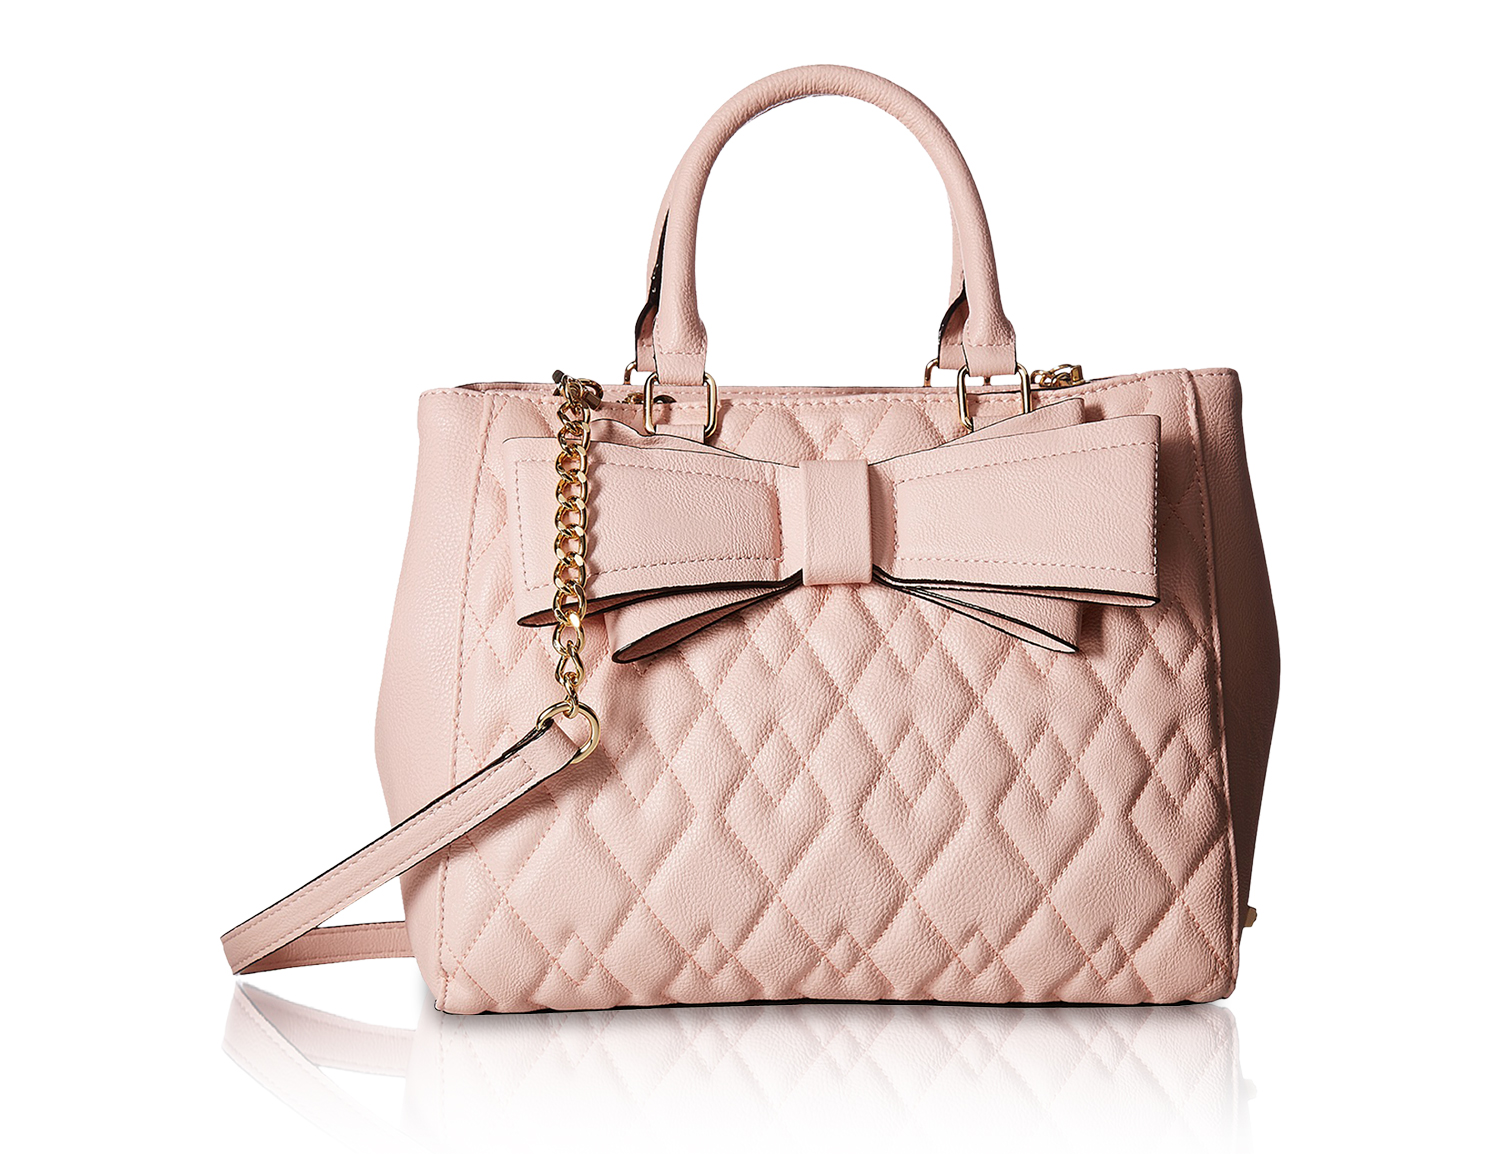 65170615d1 Betsey Johnson Quilted Multi Compartment Satchel Shoulder Bag - Pink ...